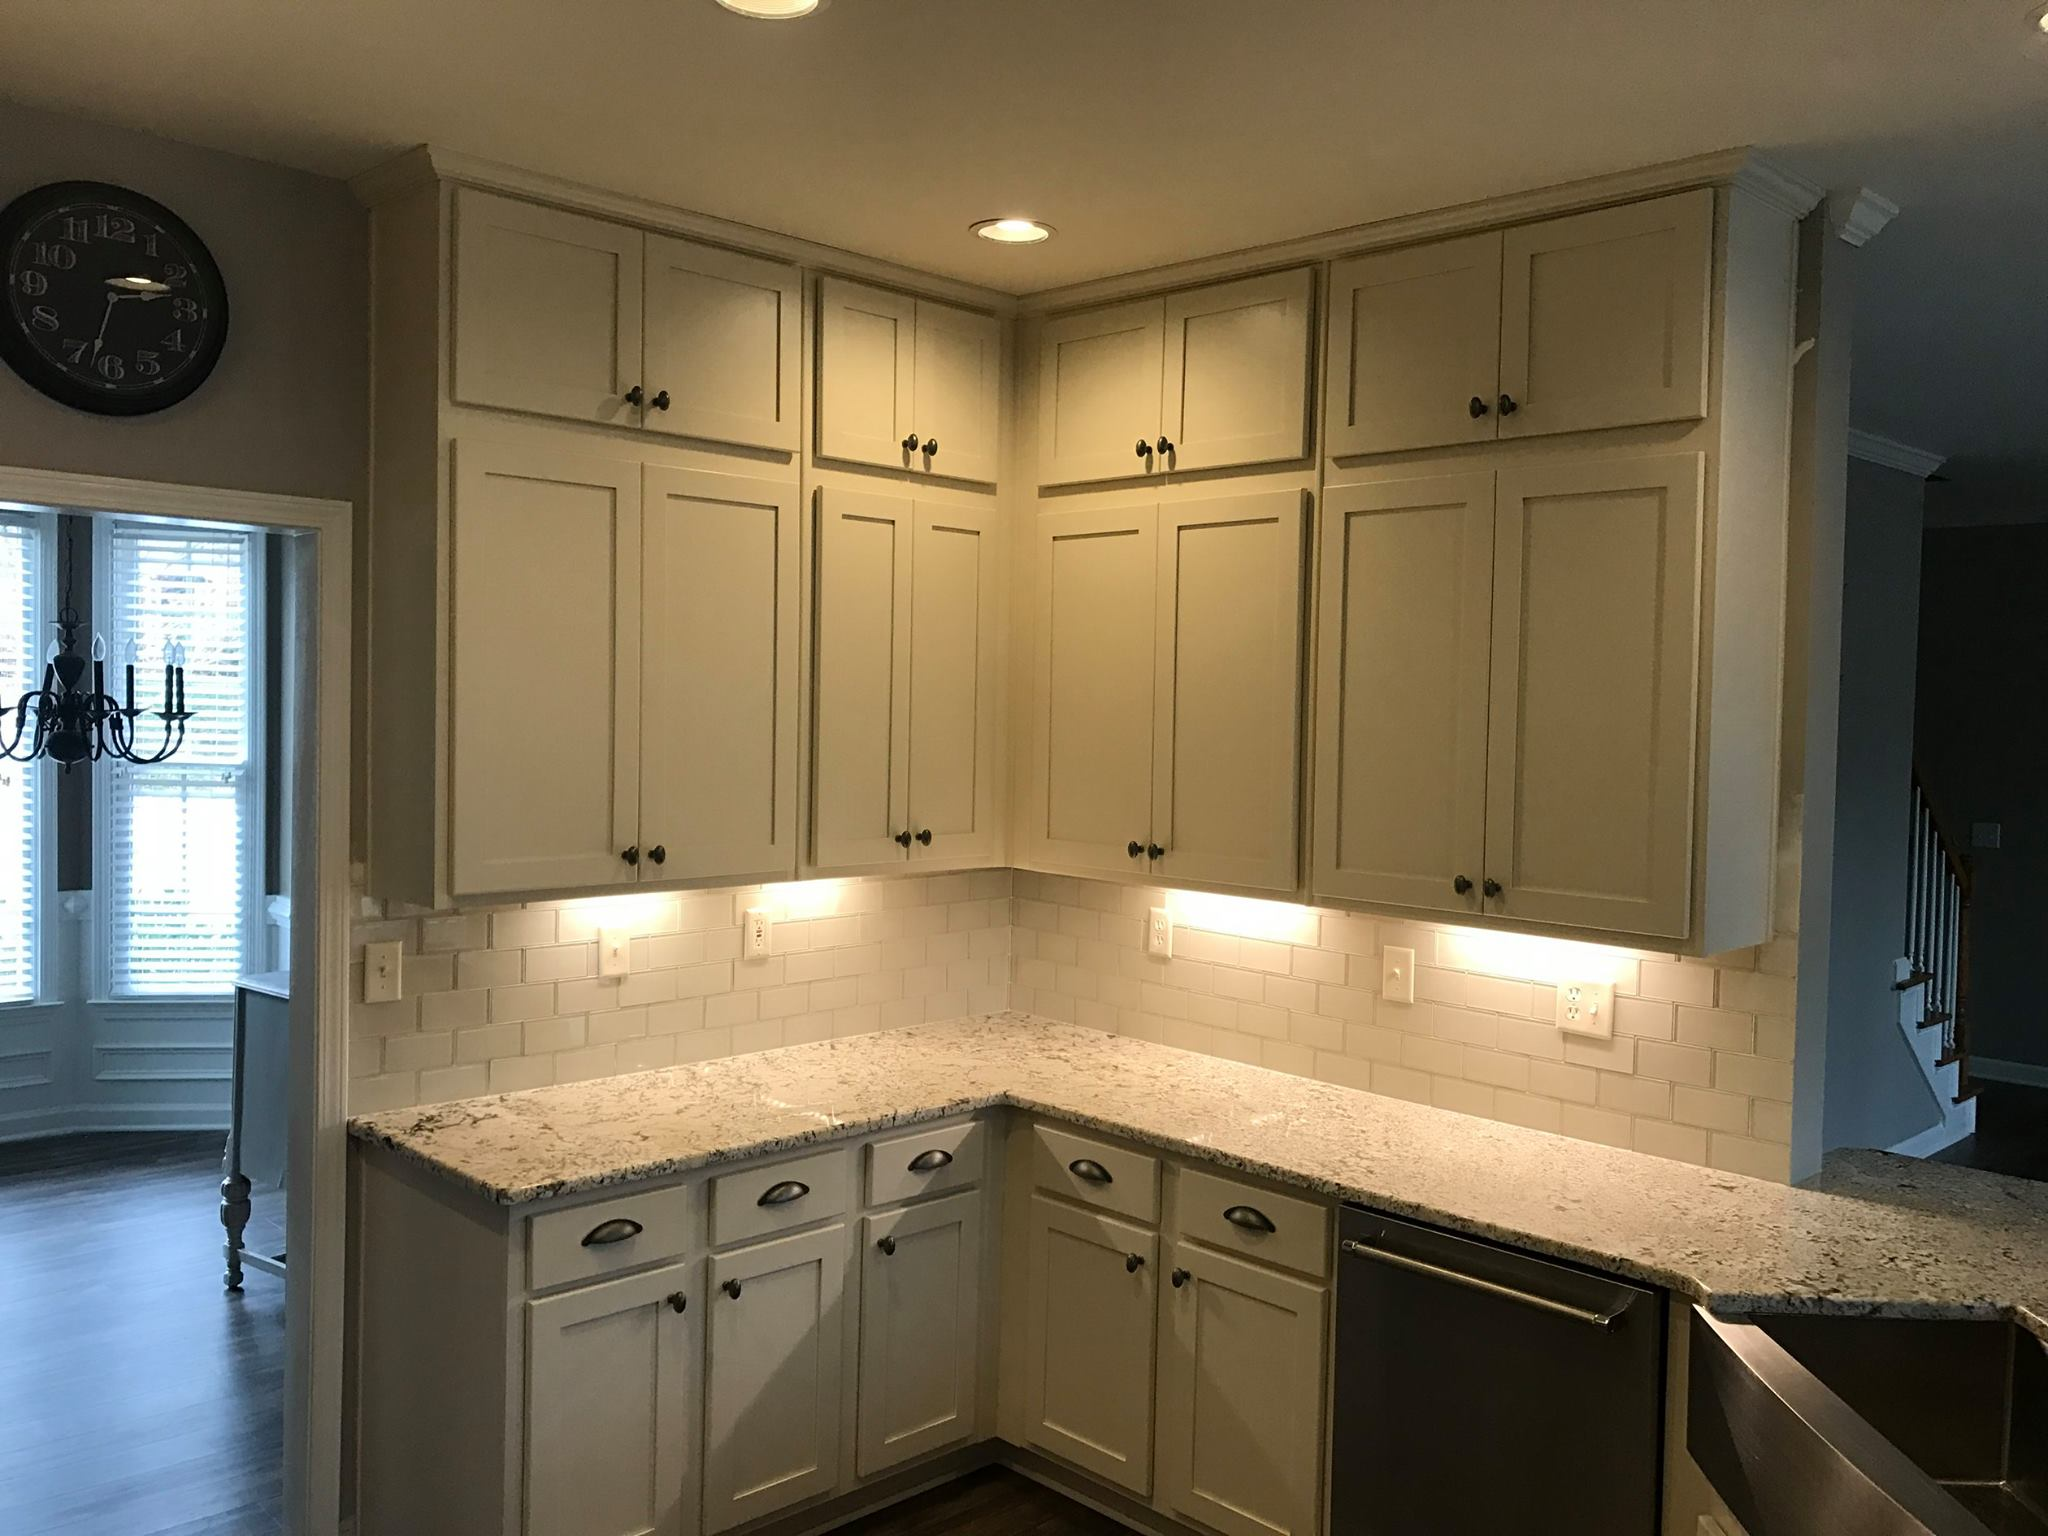 Brawner renovations Metro Atlanta Interior Renovation and remodel interior kitchen remodel recess and undercabinet lighting cobb county Image